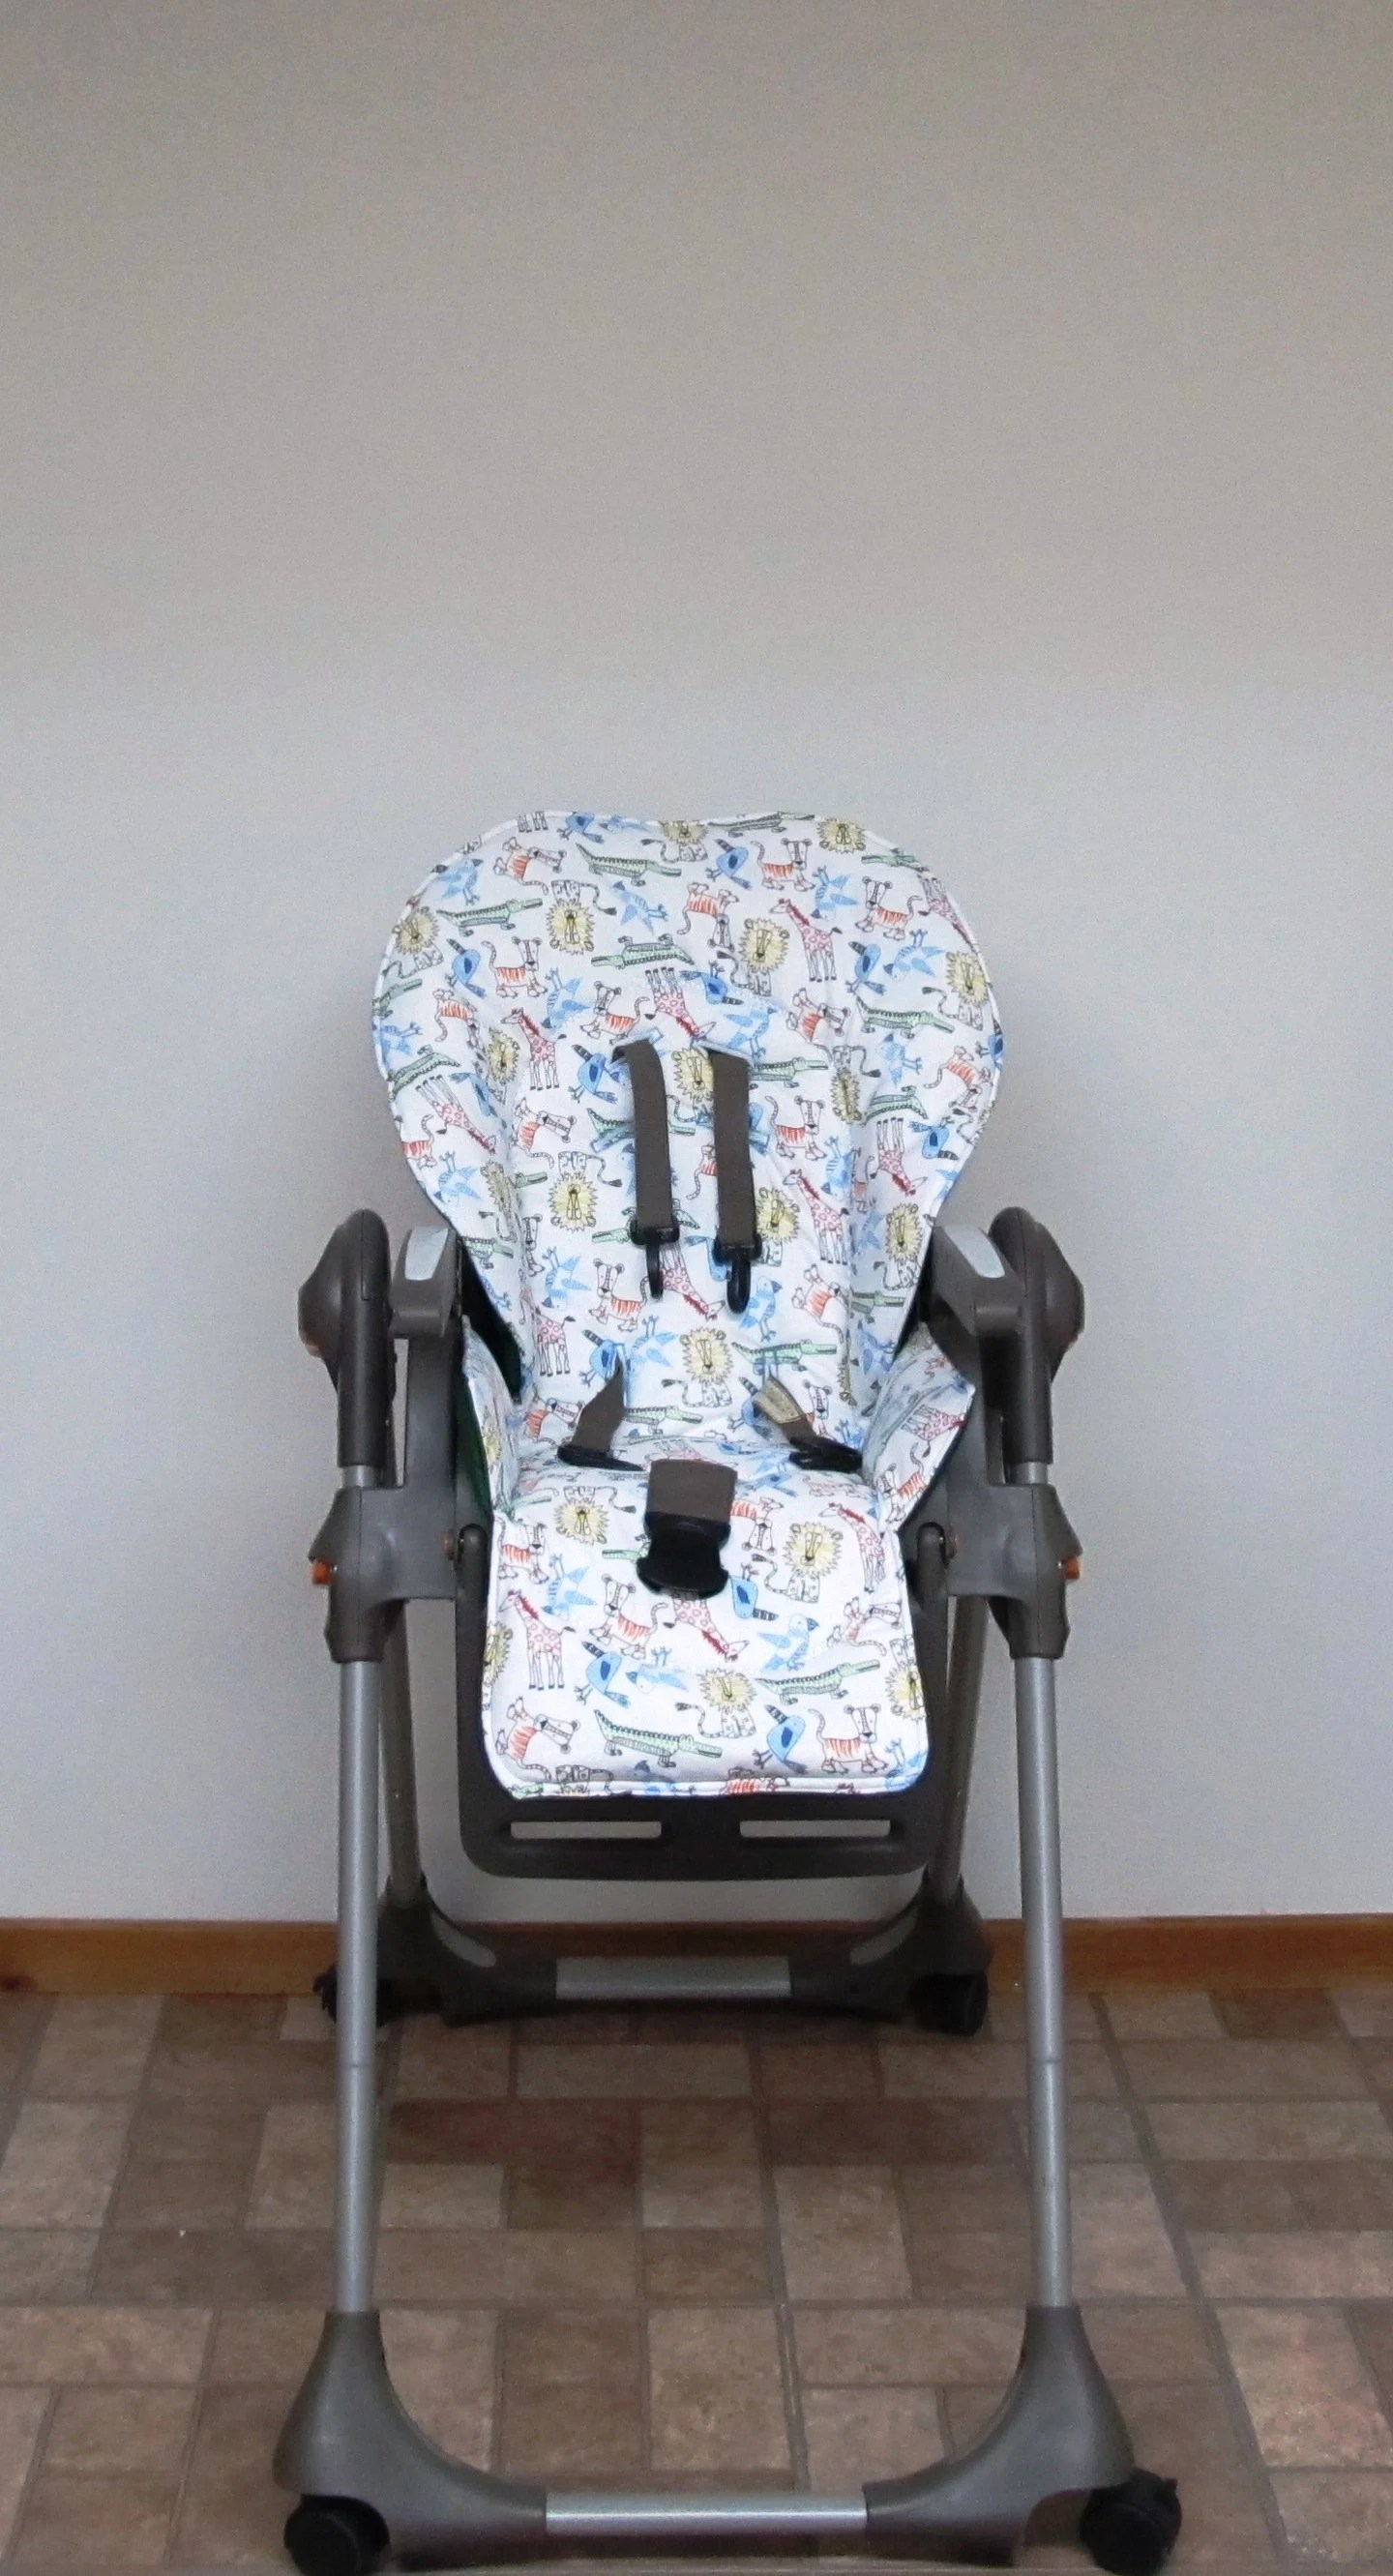 padded high chair fold up chairs tesco chicco polly replacement cover fun safari etsy kids furniture protector